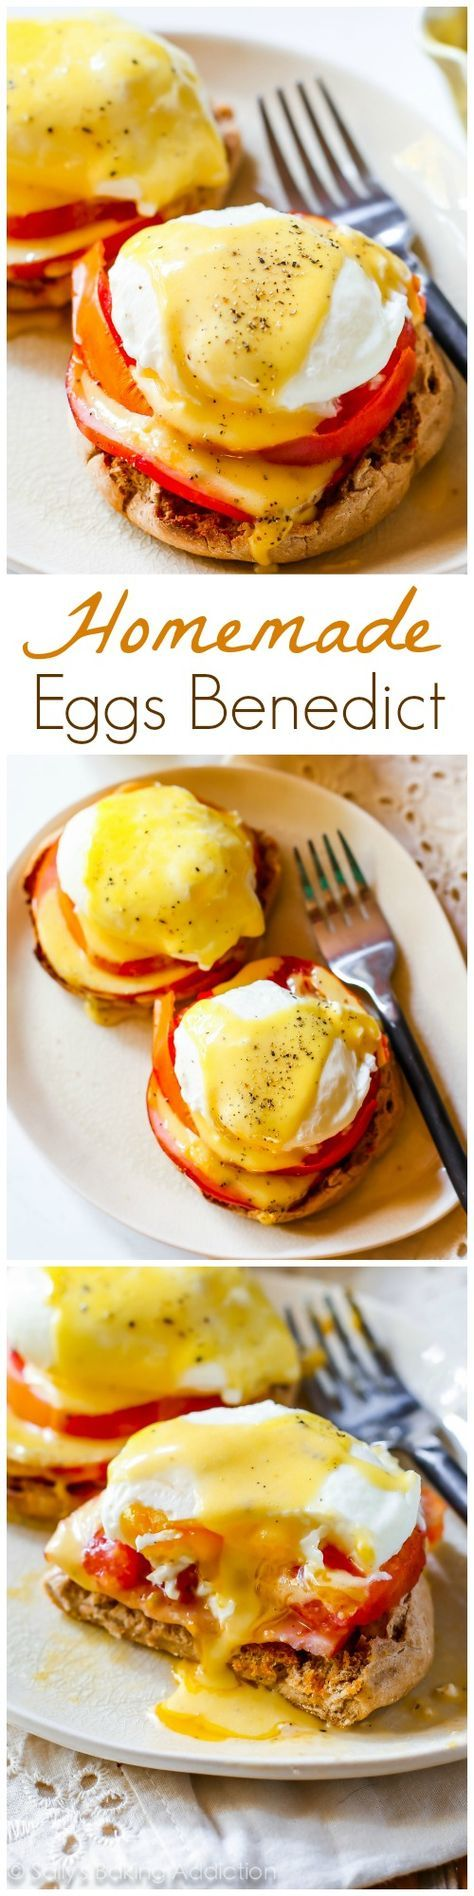 There is nothing quite like Homemade Eggs Benedict with a perfectly poached egg, creamy hollandaise, and crispy Canadian bacon. Recipe on sallysbakingaddiction.com